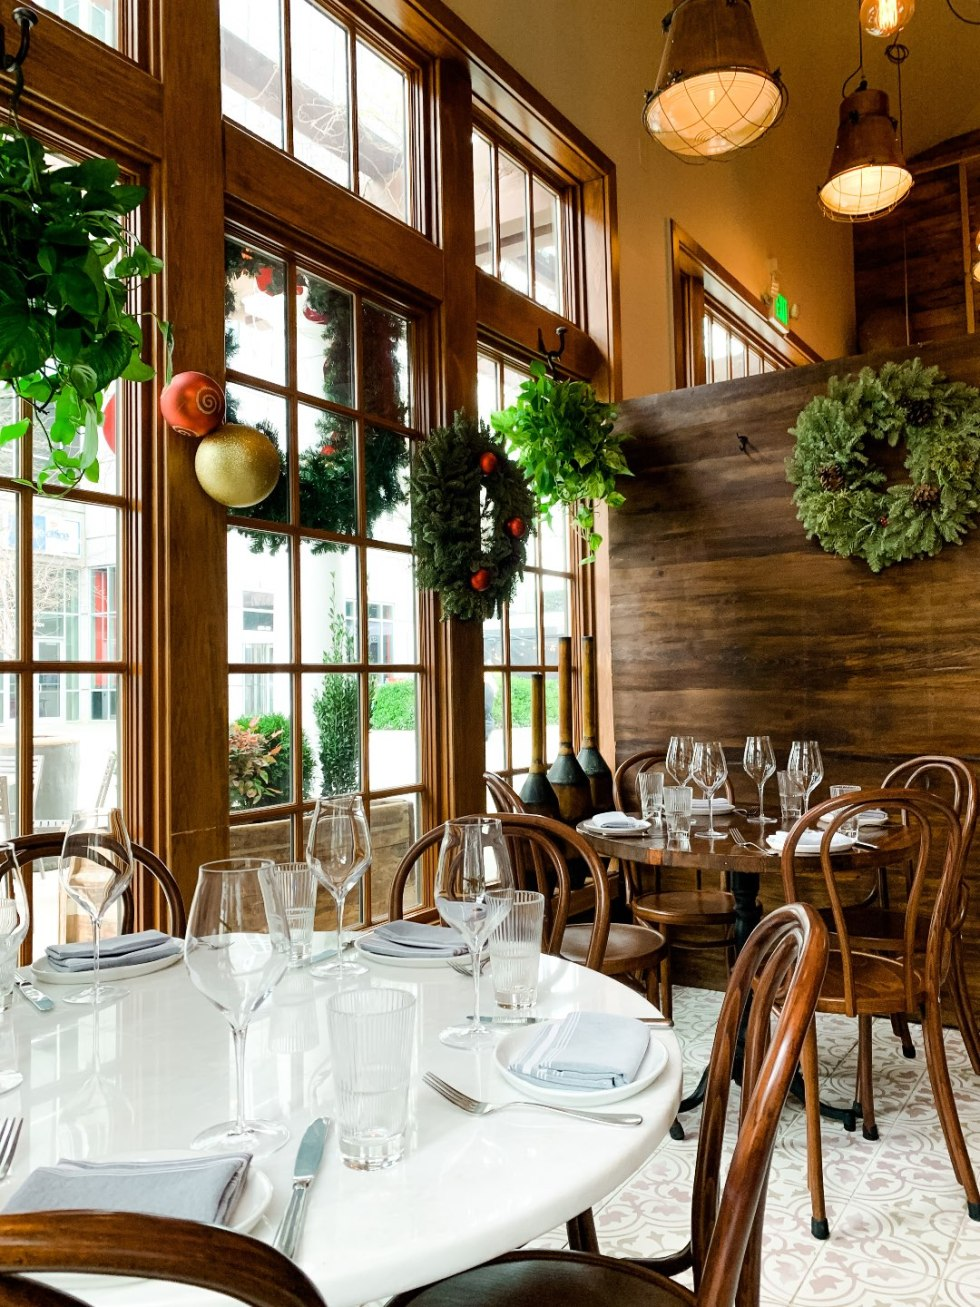 Brunch in Raleigh by popular Raleigh blog, I'm Fixin To: image of Rosewater Kitchen interior.